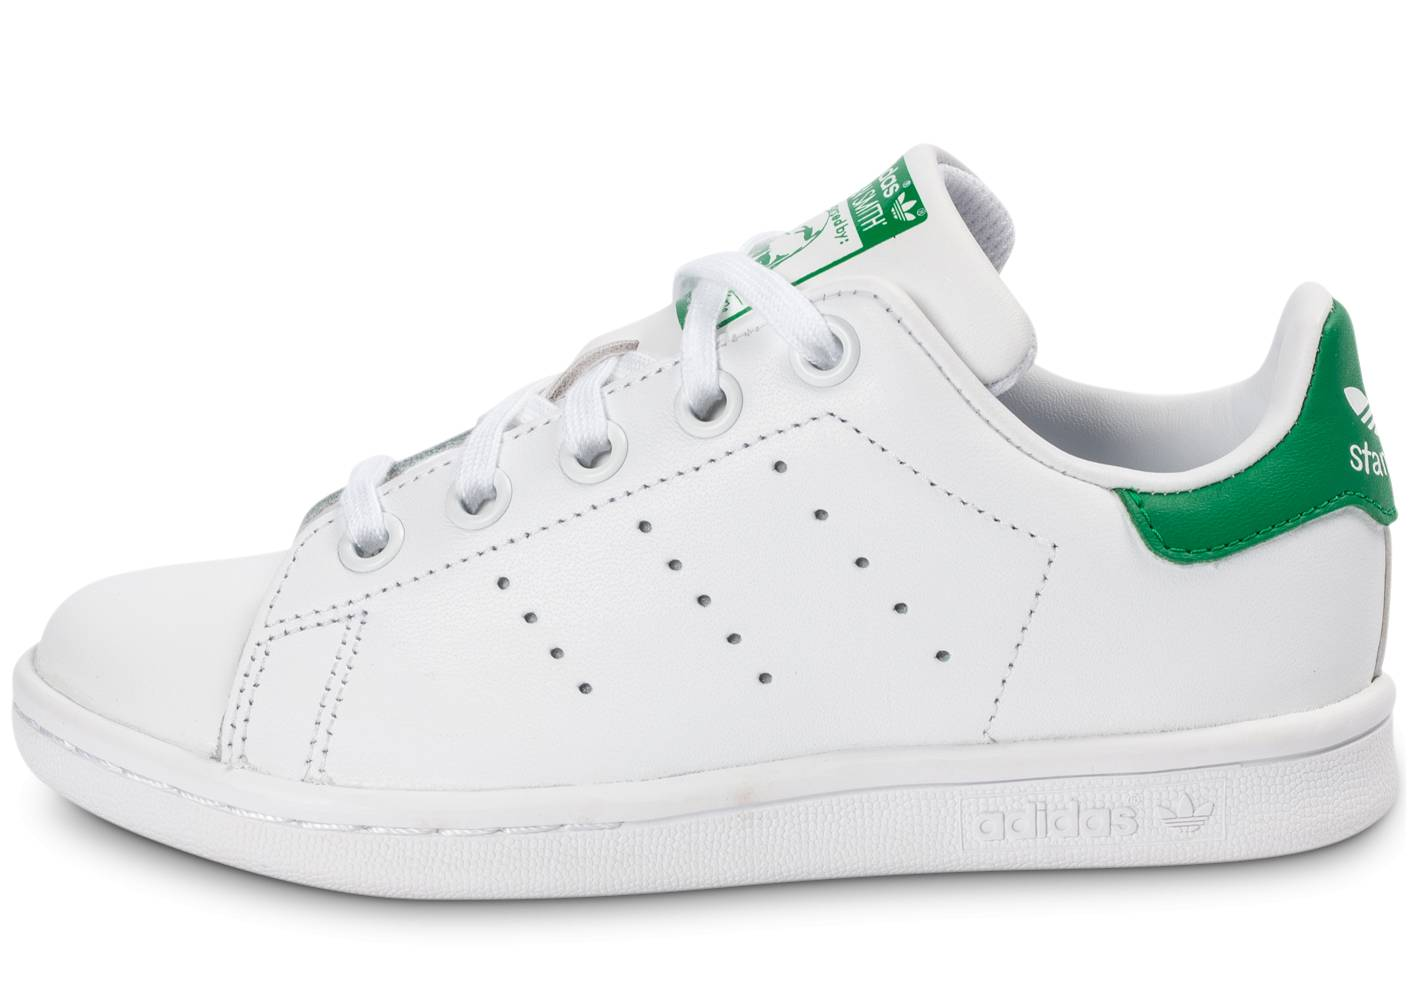 adidas Baskets adidas Stan Smith Enfant Blanc Vert 35